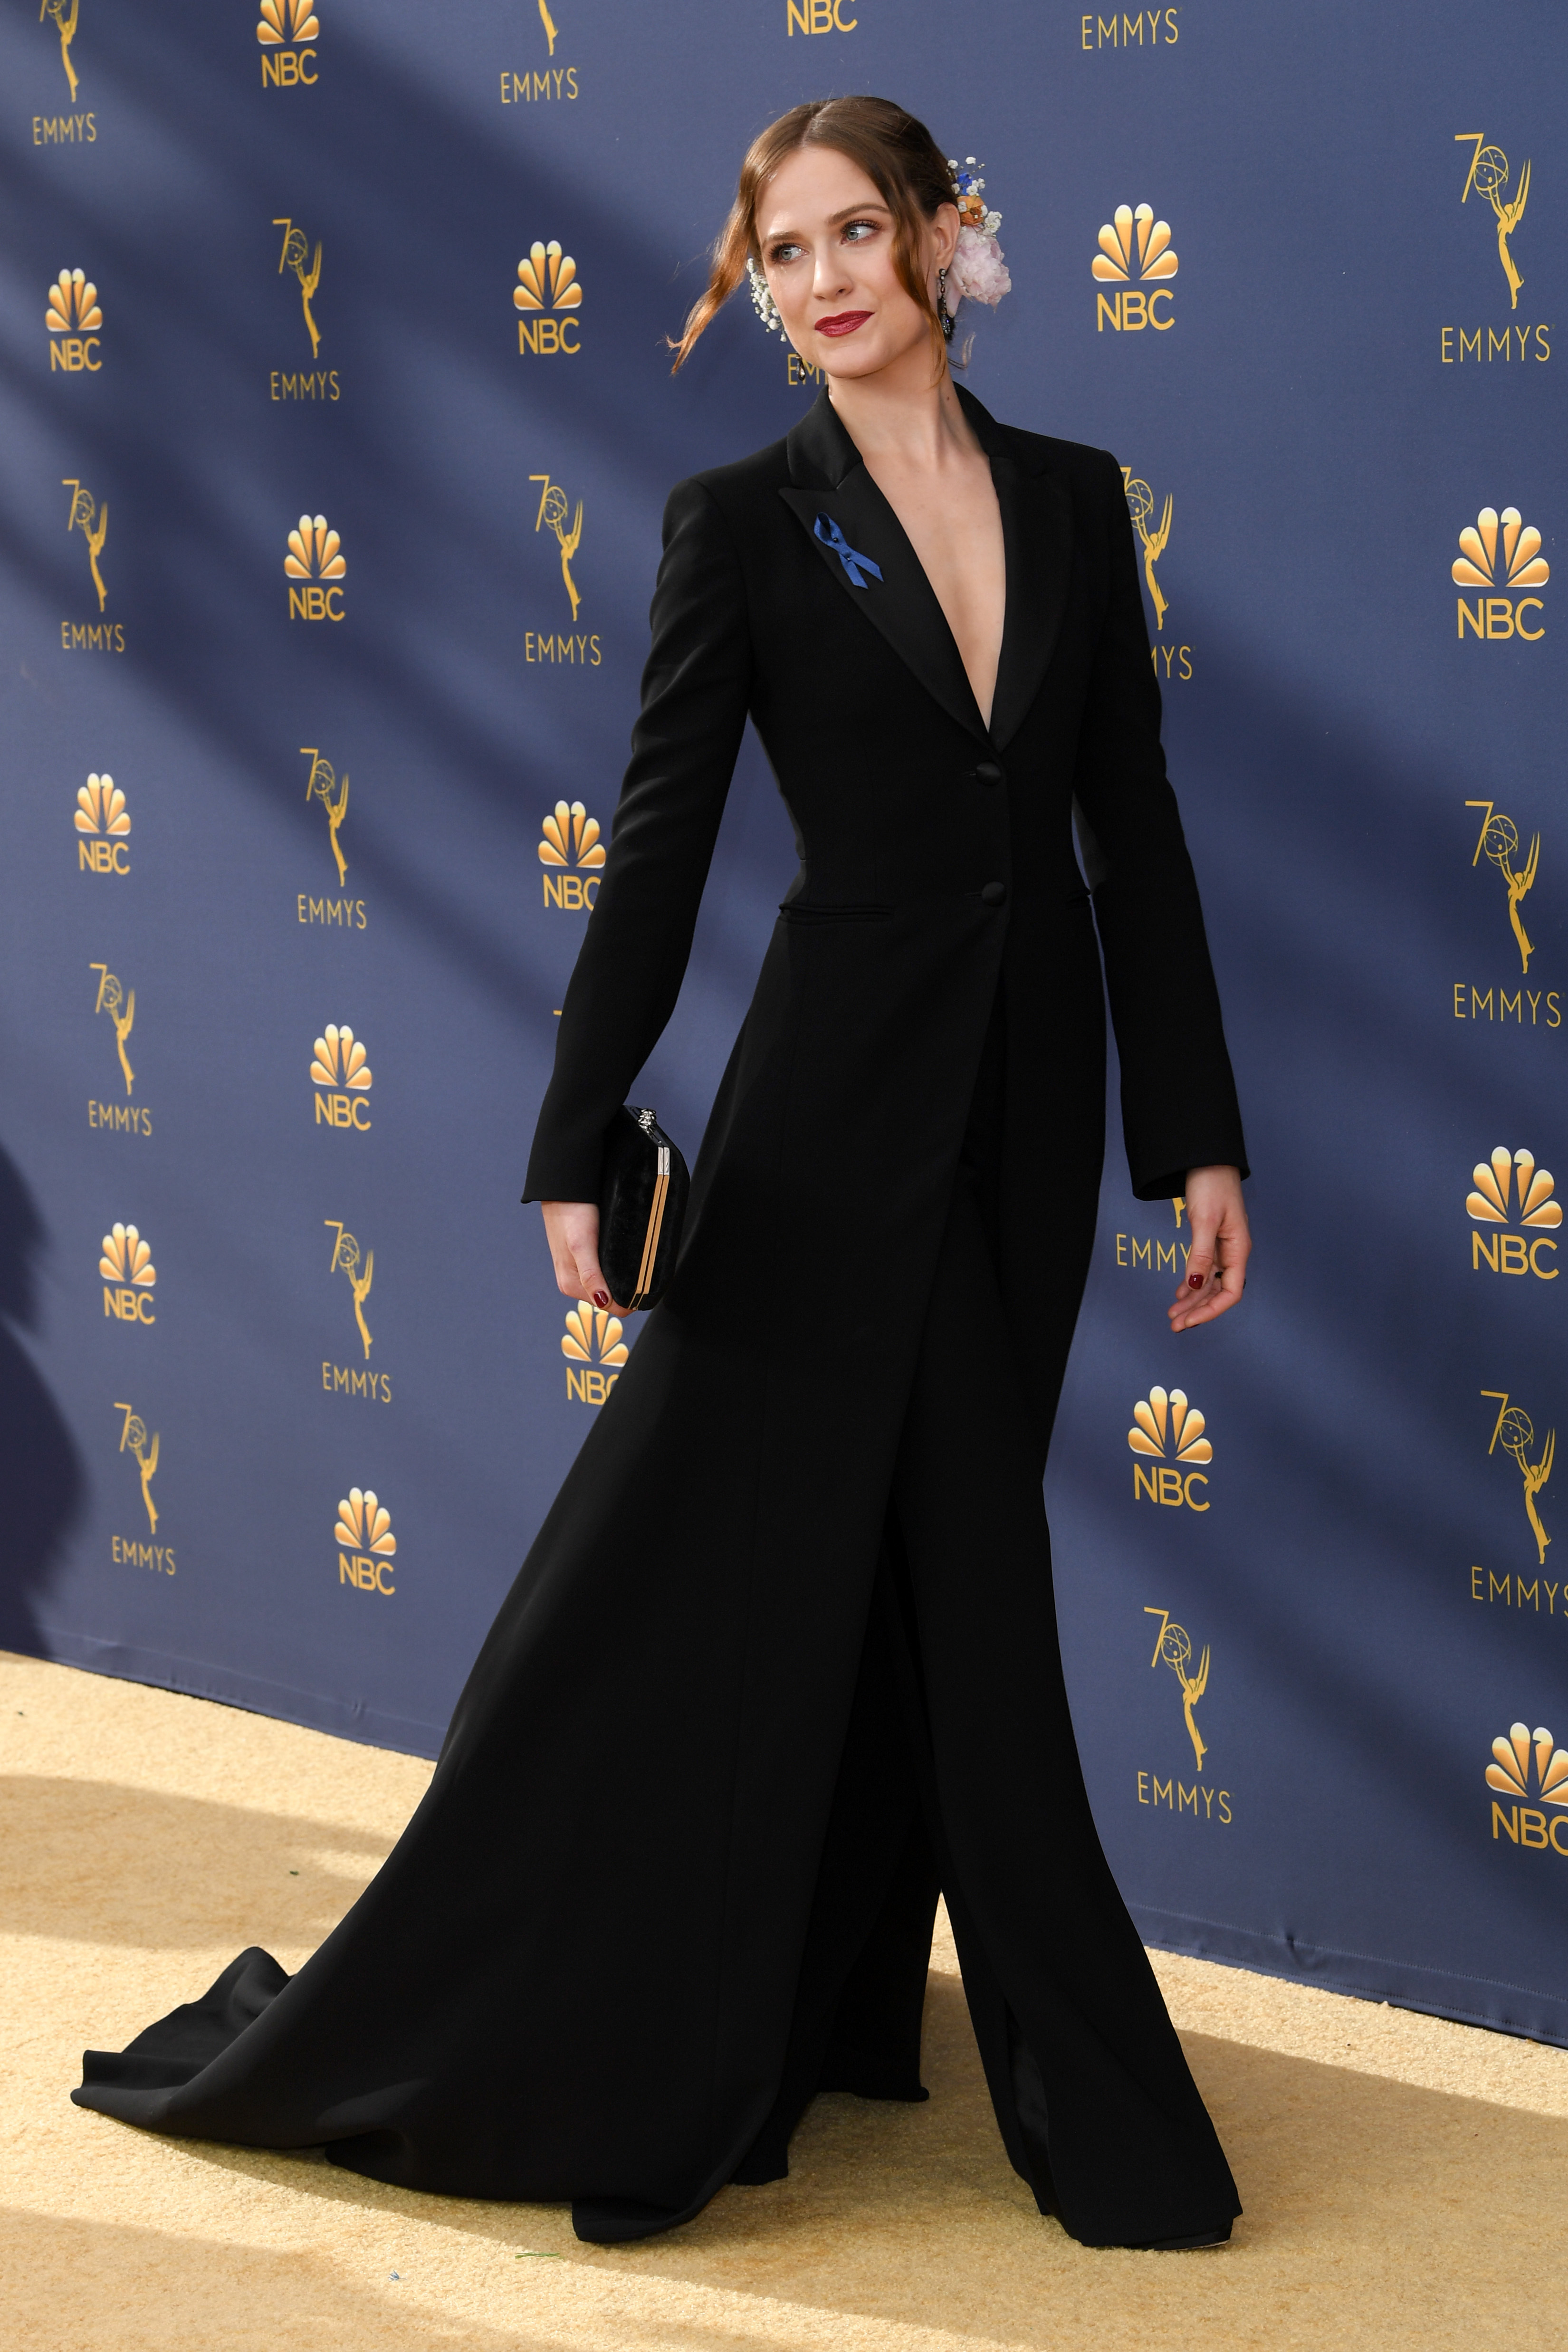 Evan Rachel Wood attends the 70th Primetime Emmy Awards in Los Angeles on Sept. 17, 2018.